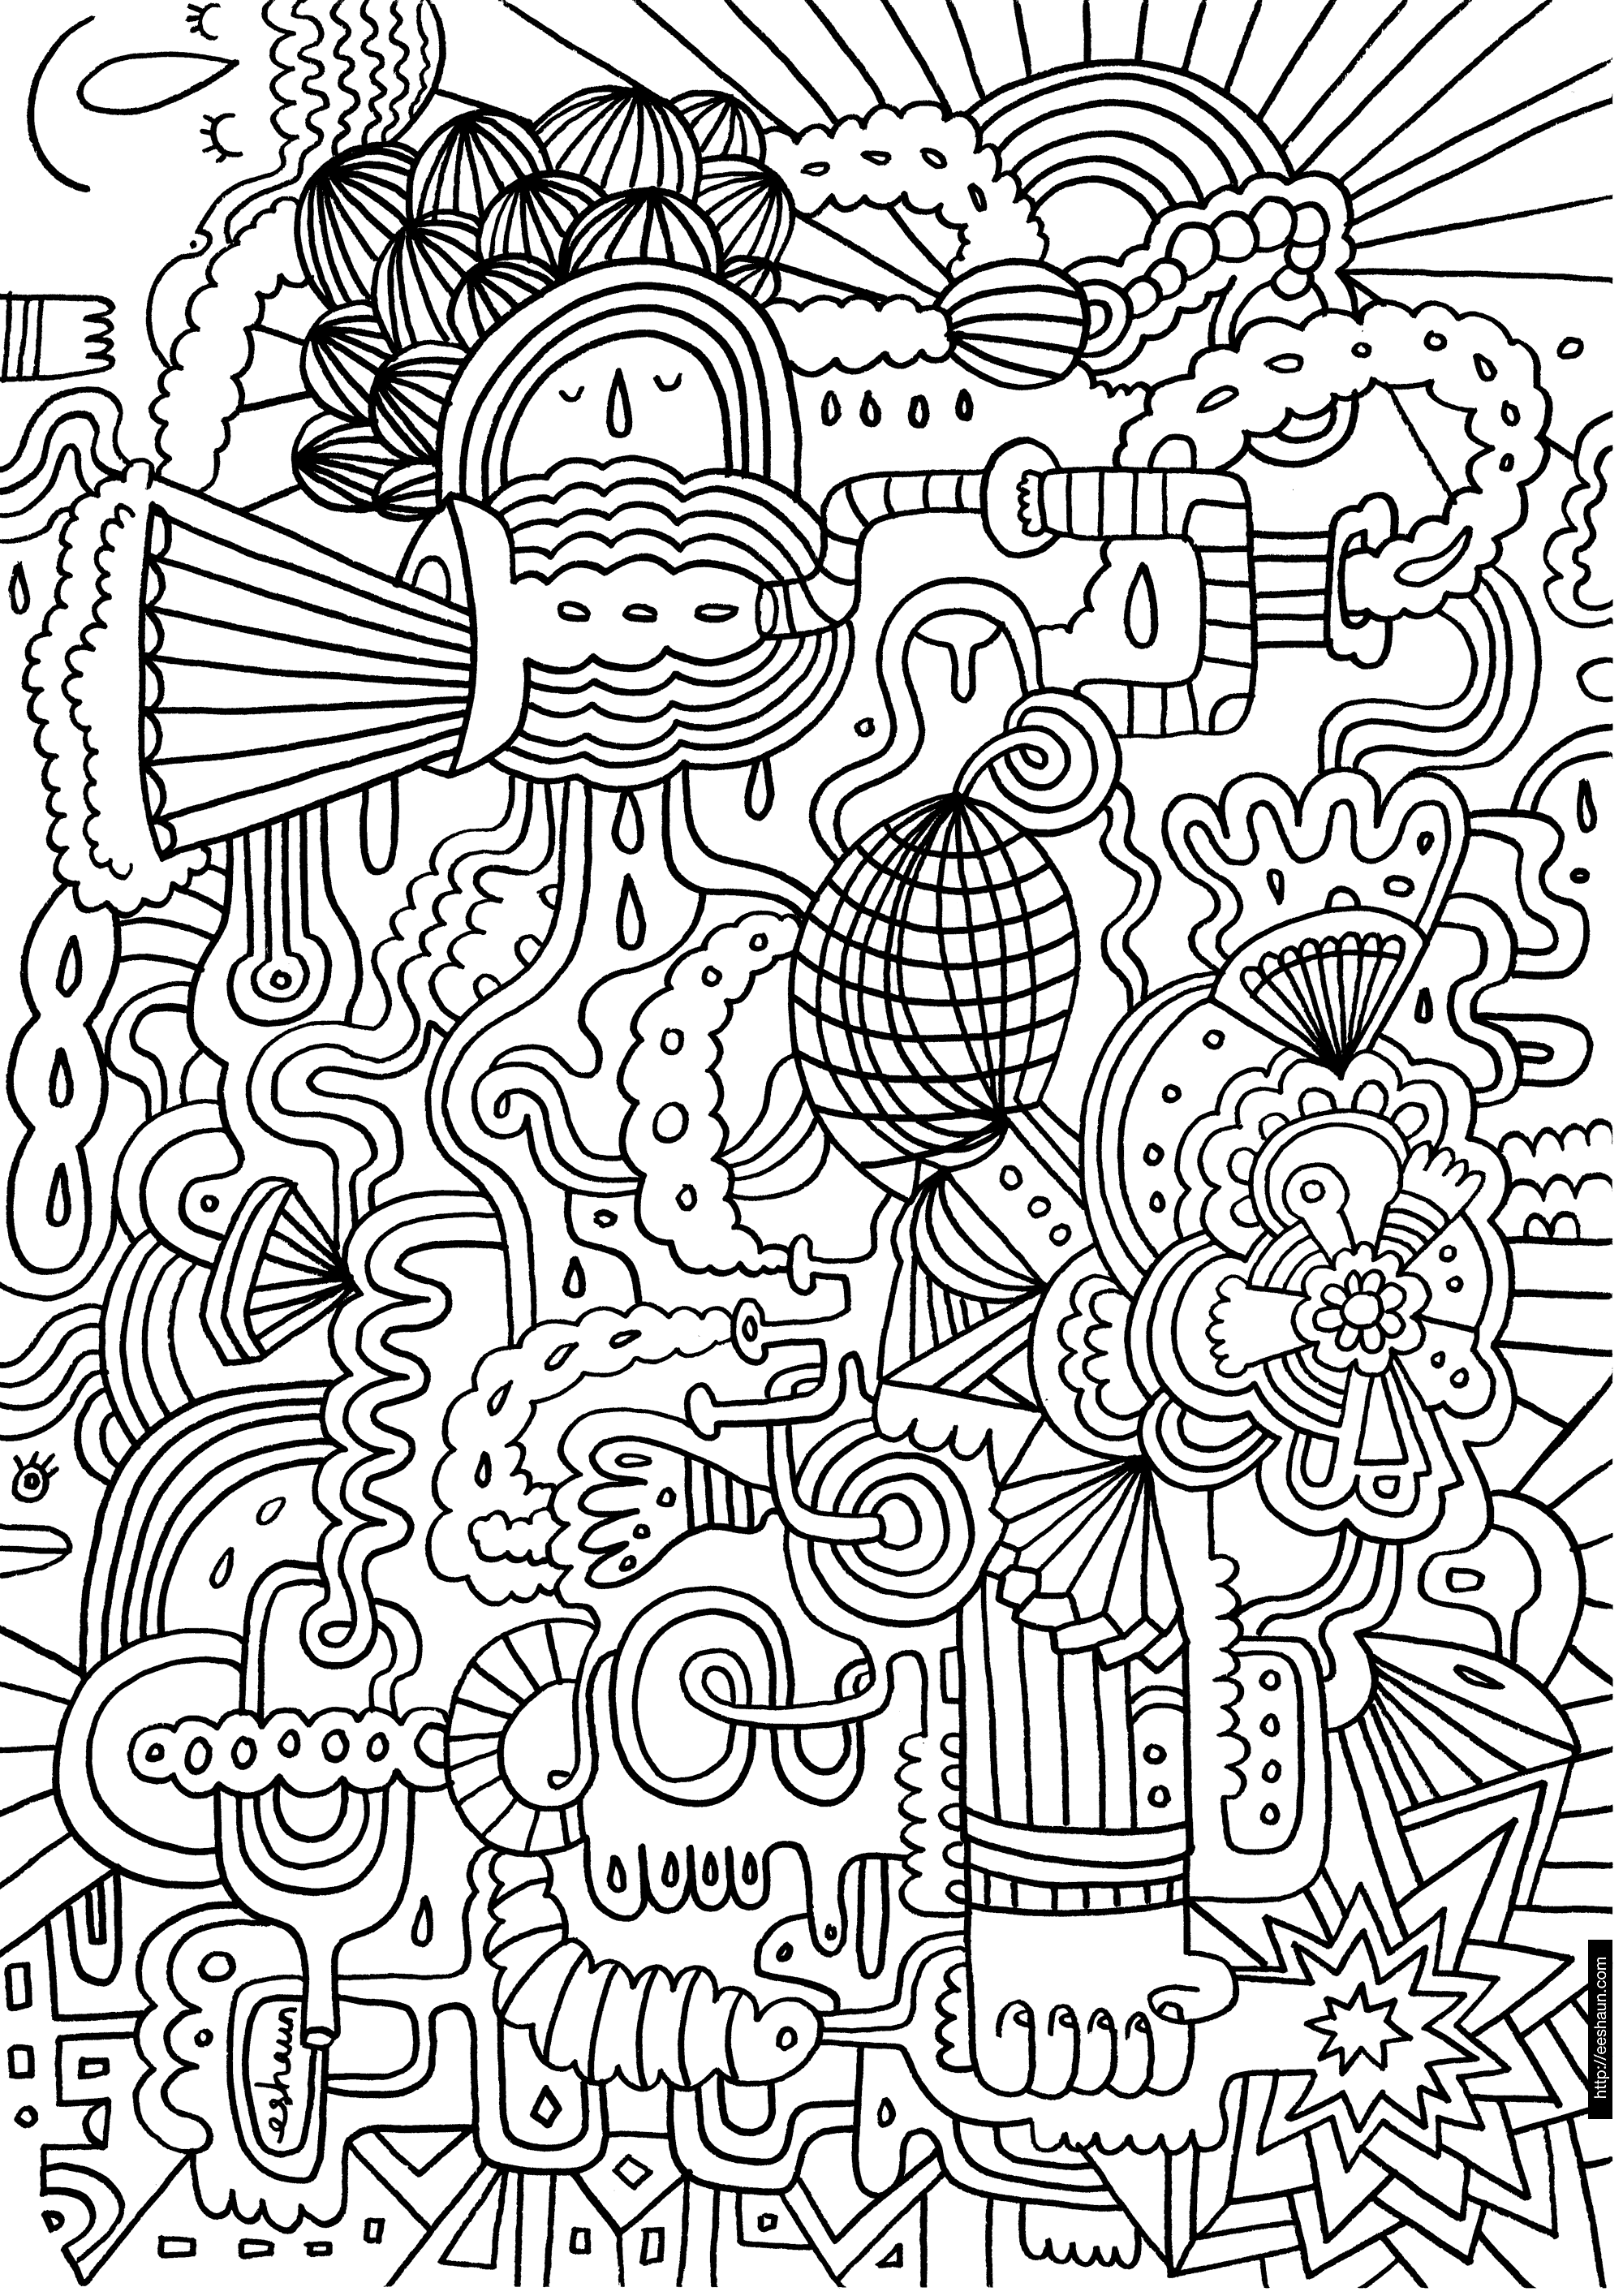 hard coloring pages free large images - Difficult Coloring Pages